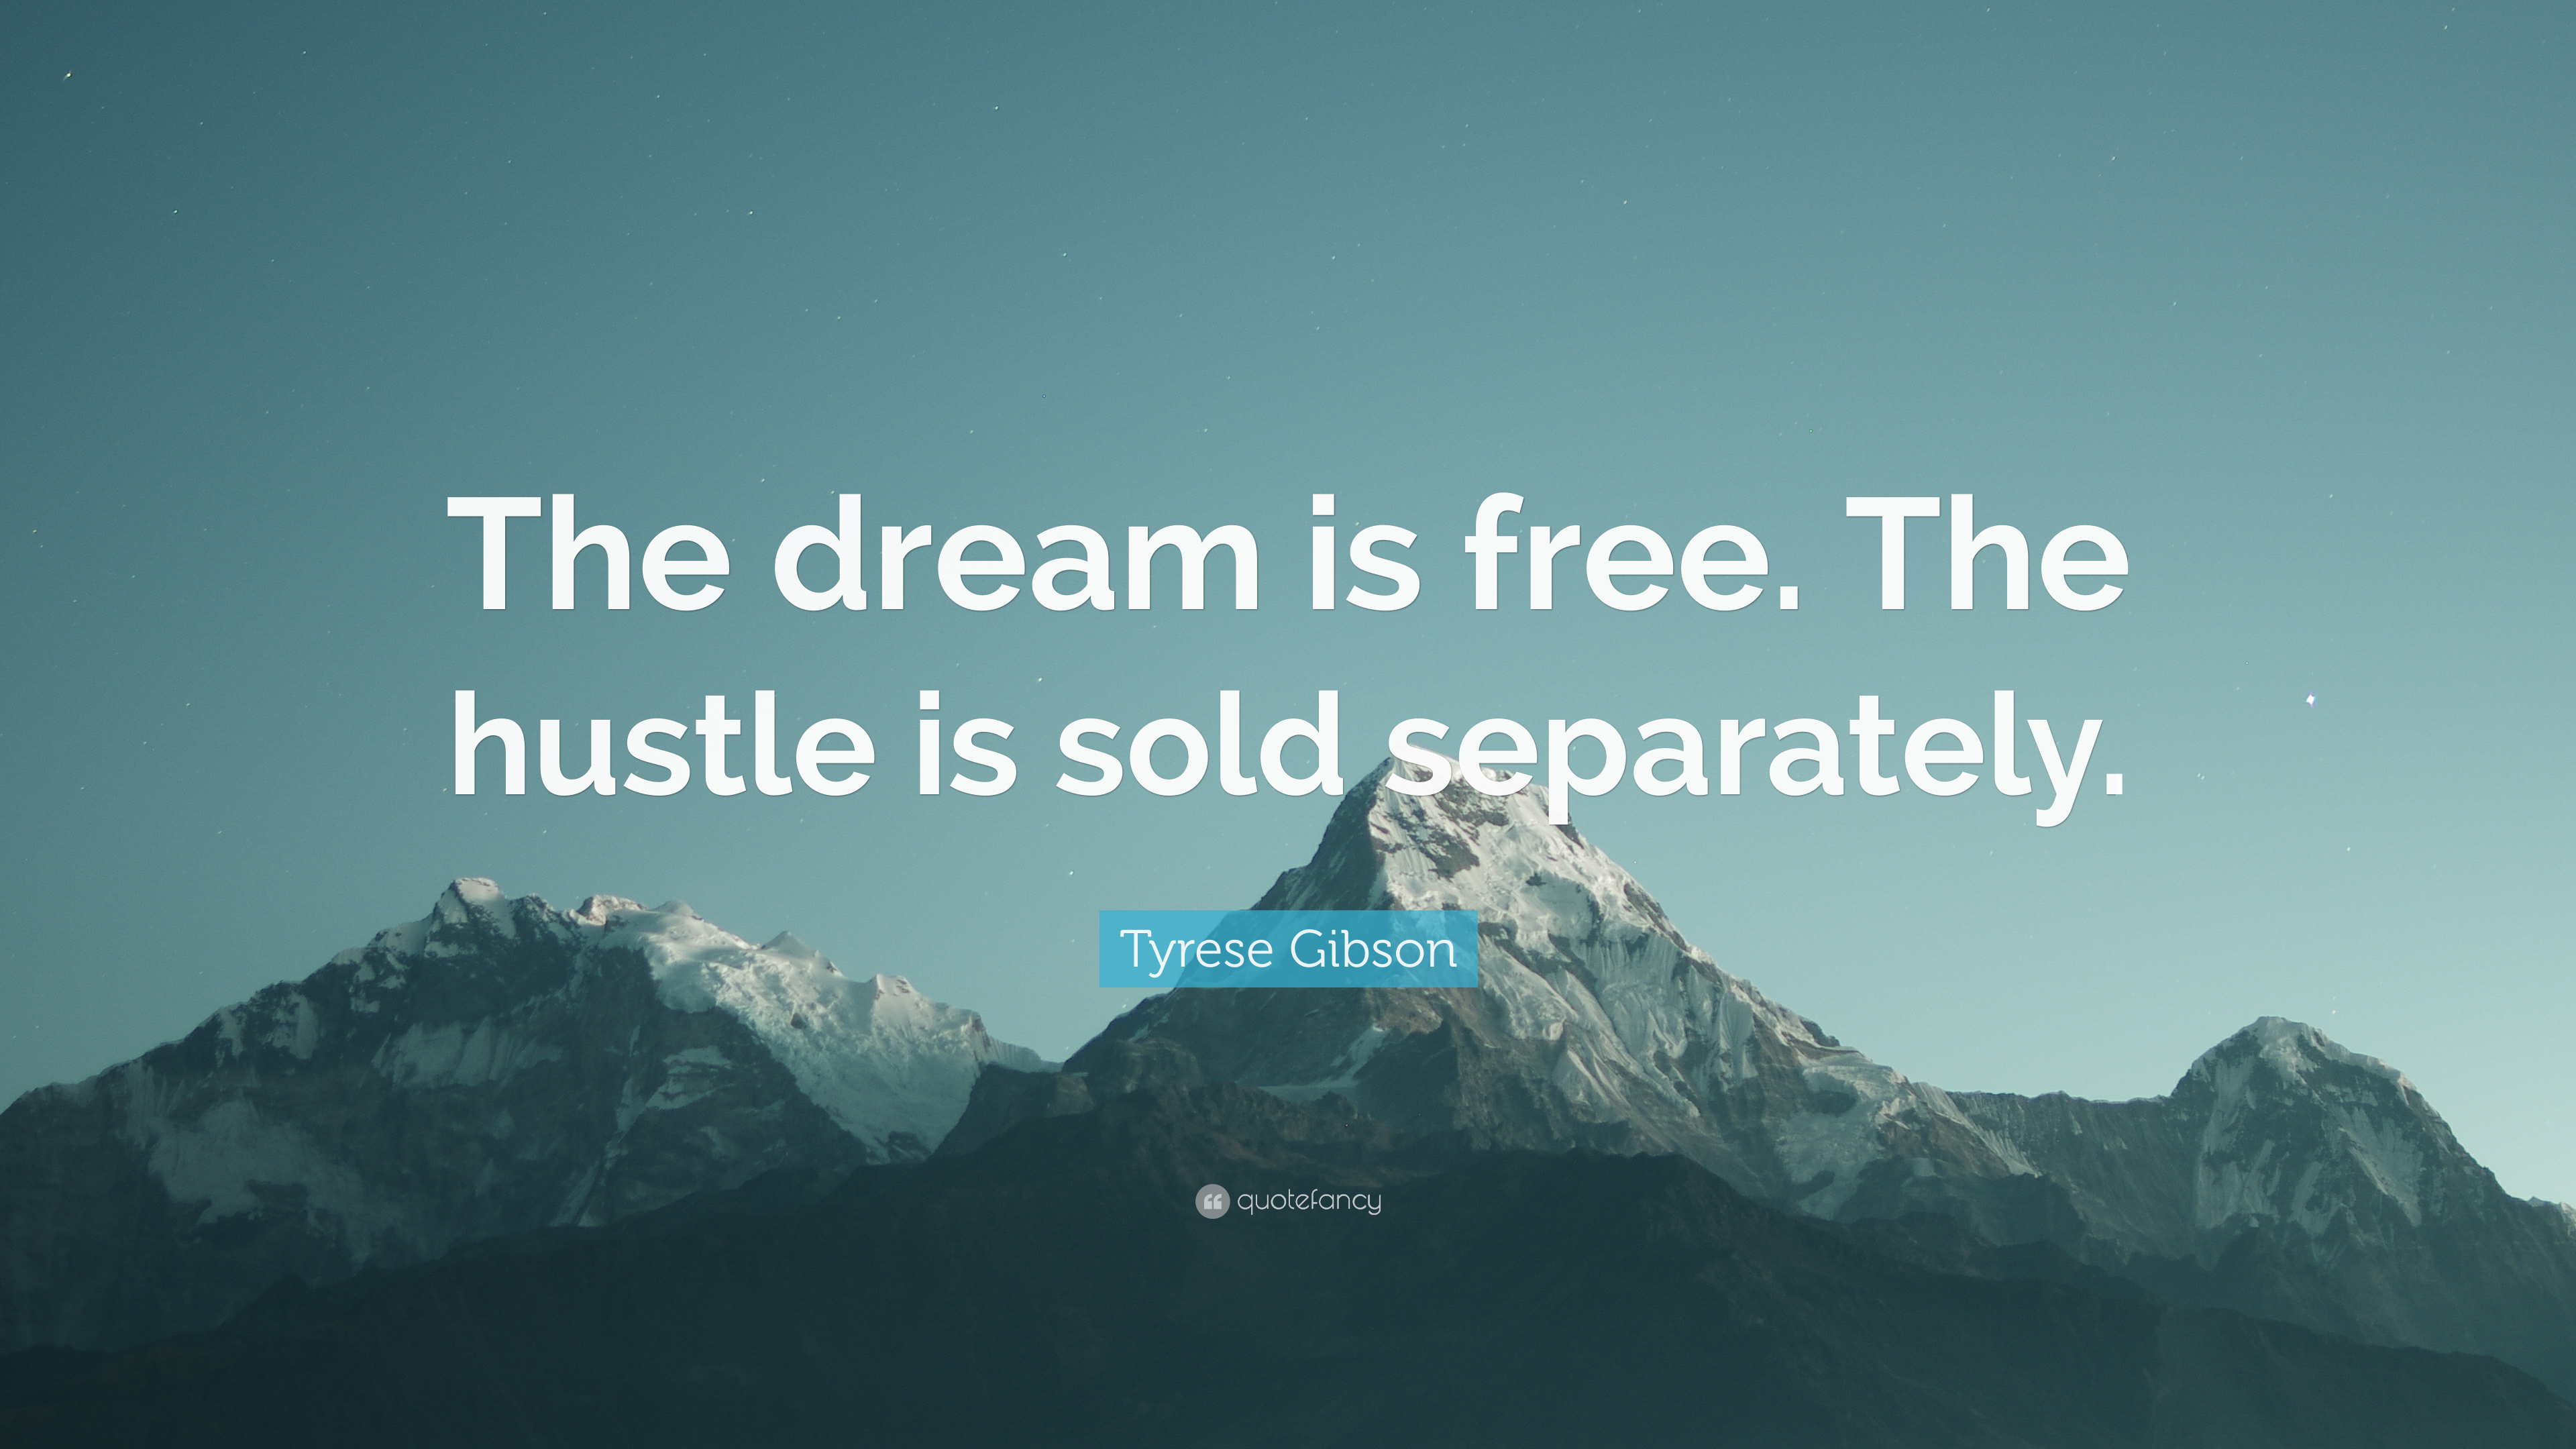 Tyrese Gibson Quote The Dream Is Free Hustle Sold Separately